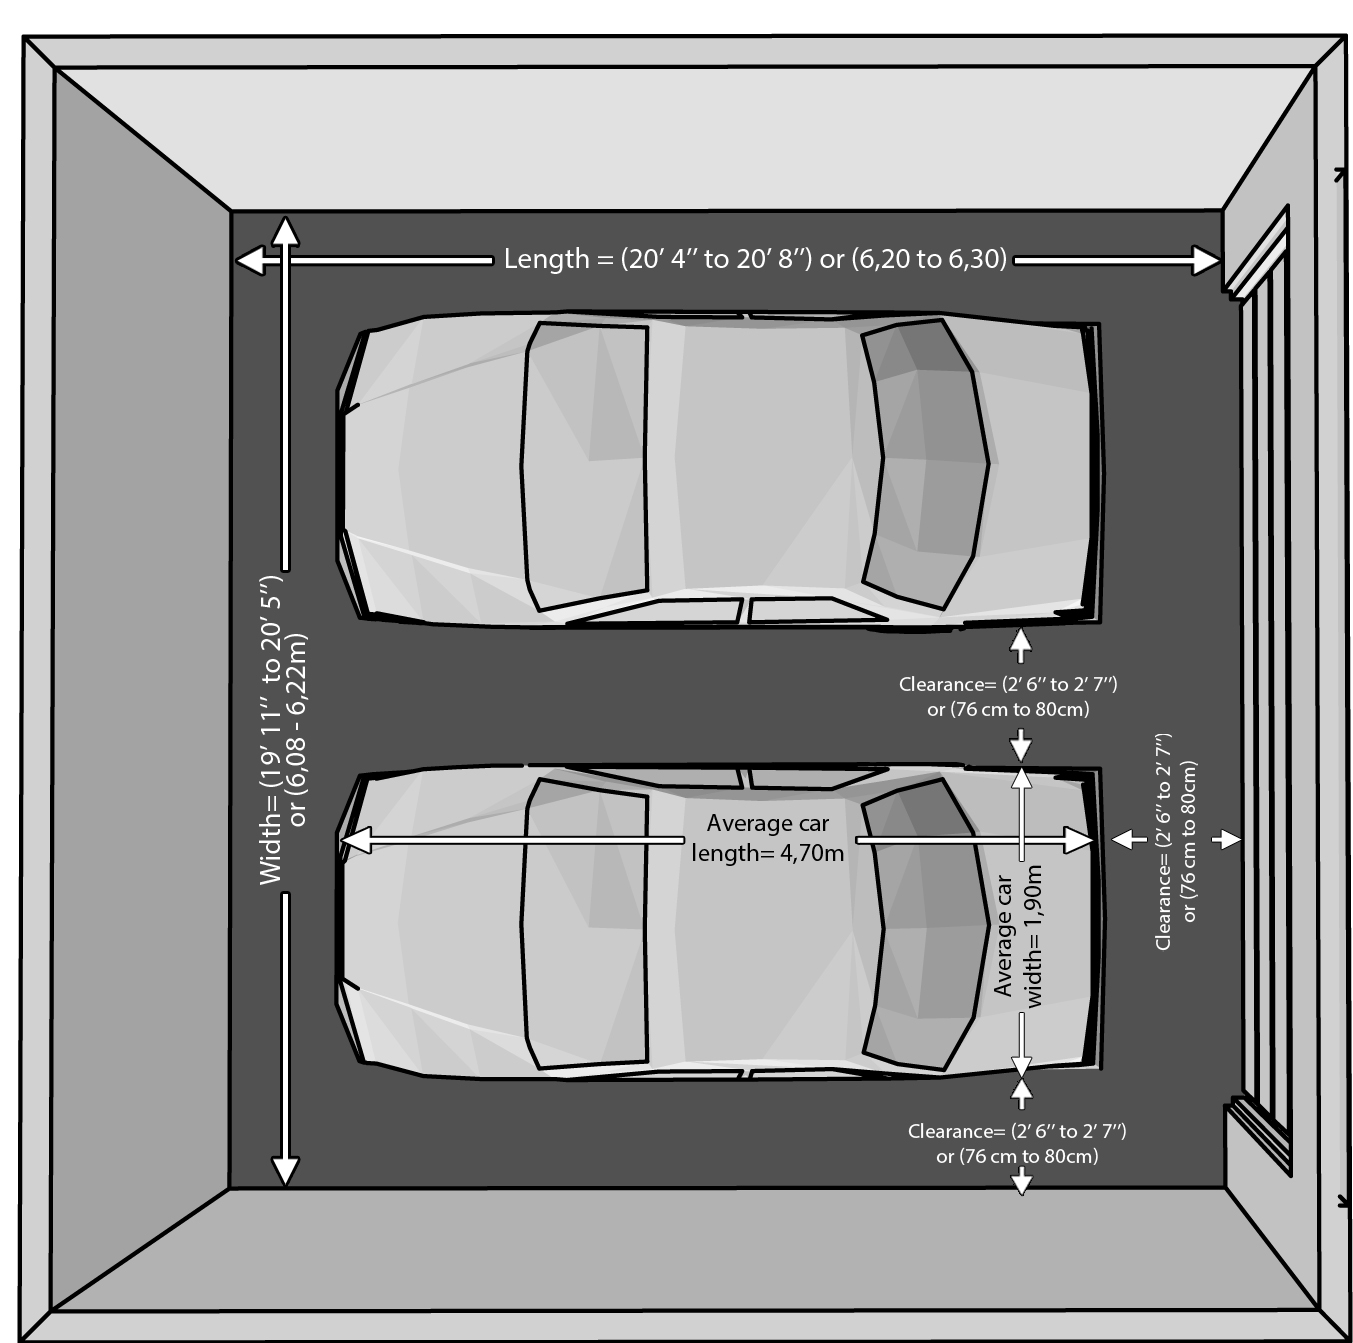 Normal height of garage doors - Garage Size For Two Cars Garage Dimensions For Two Cars Garage Measurements For Two